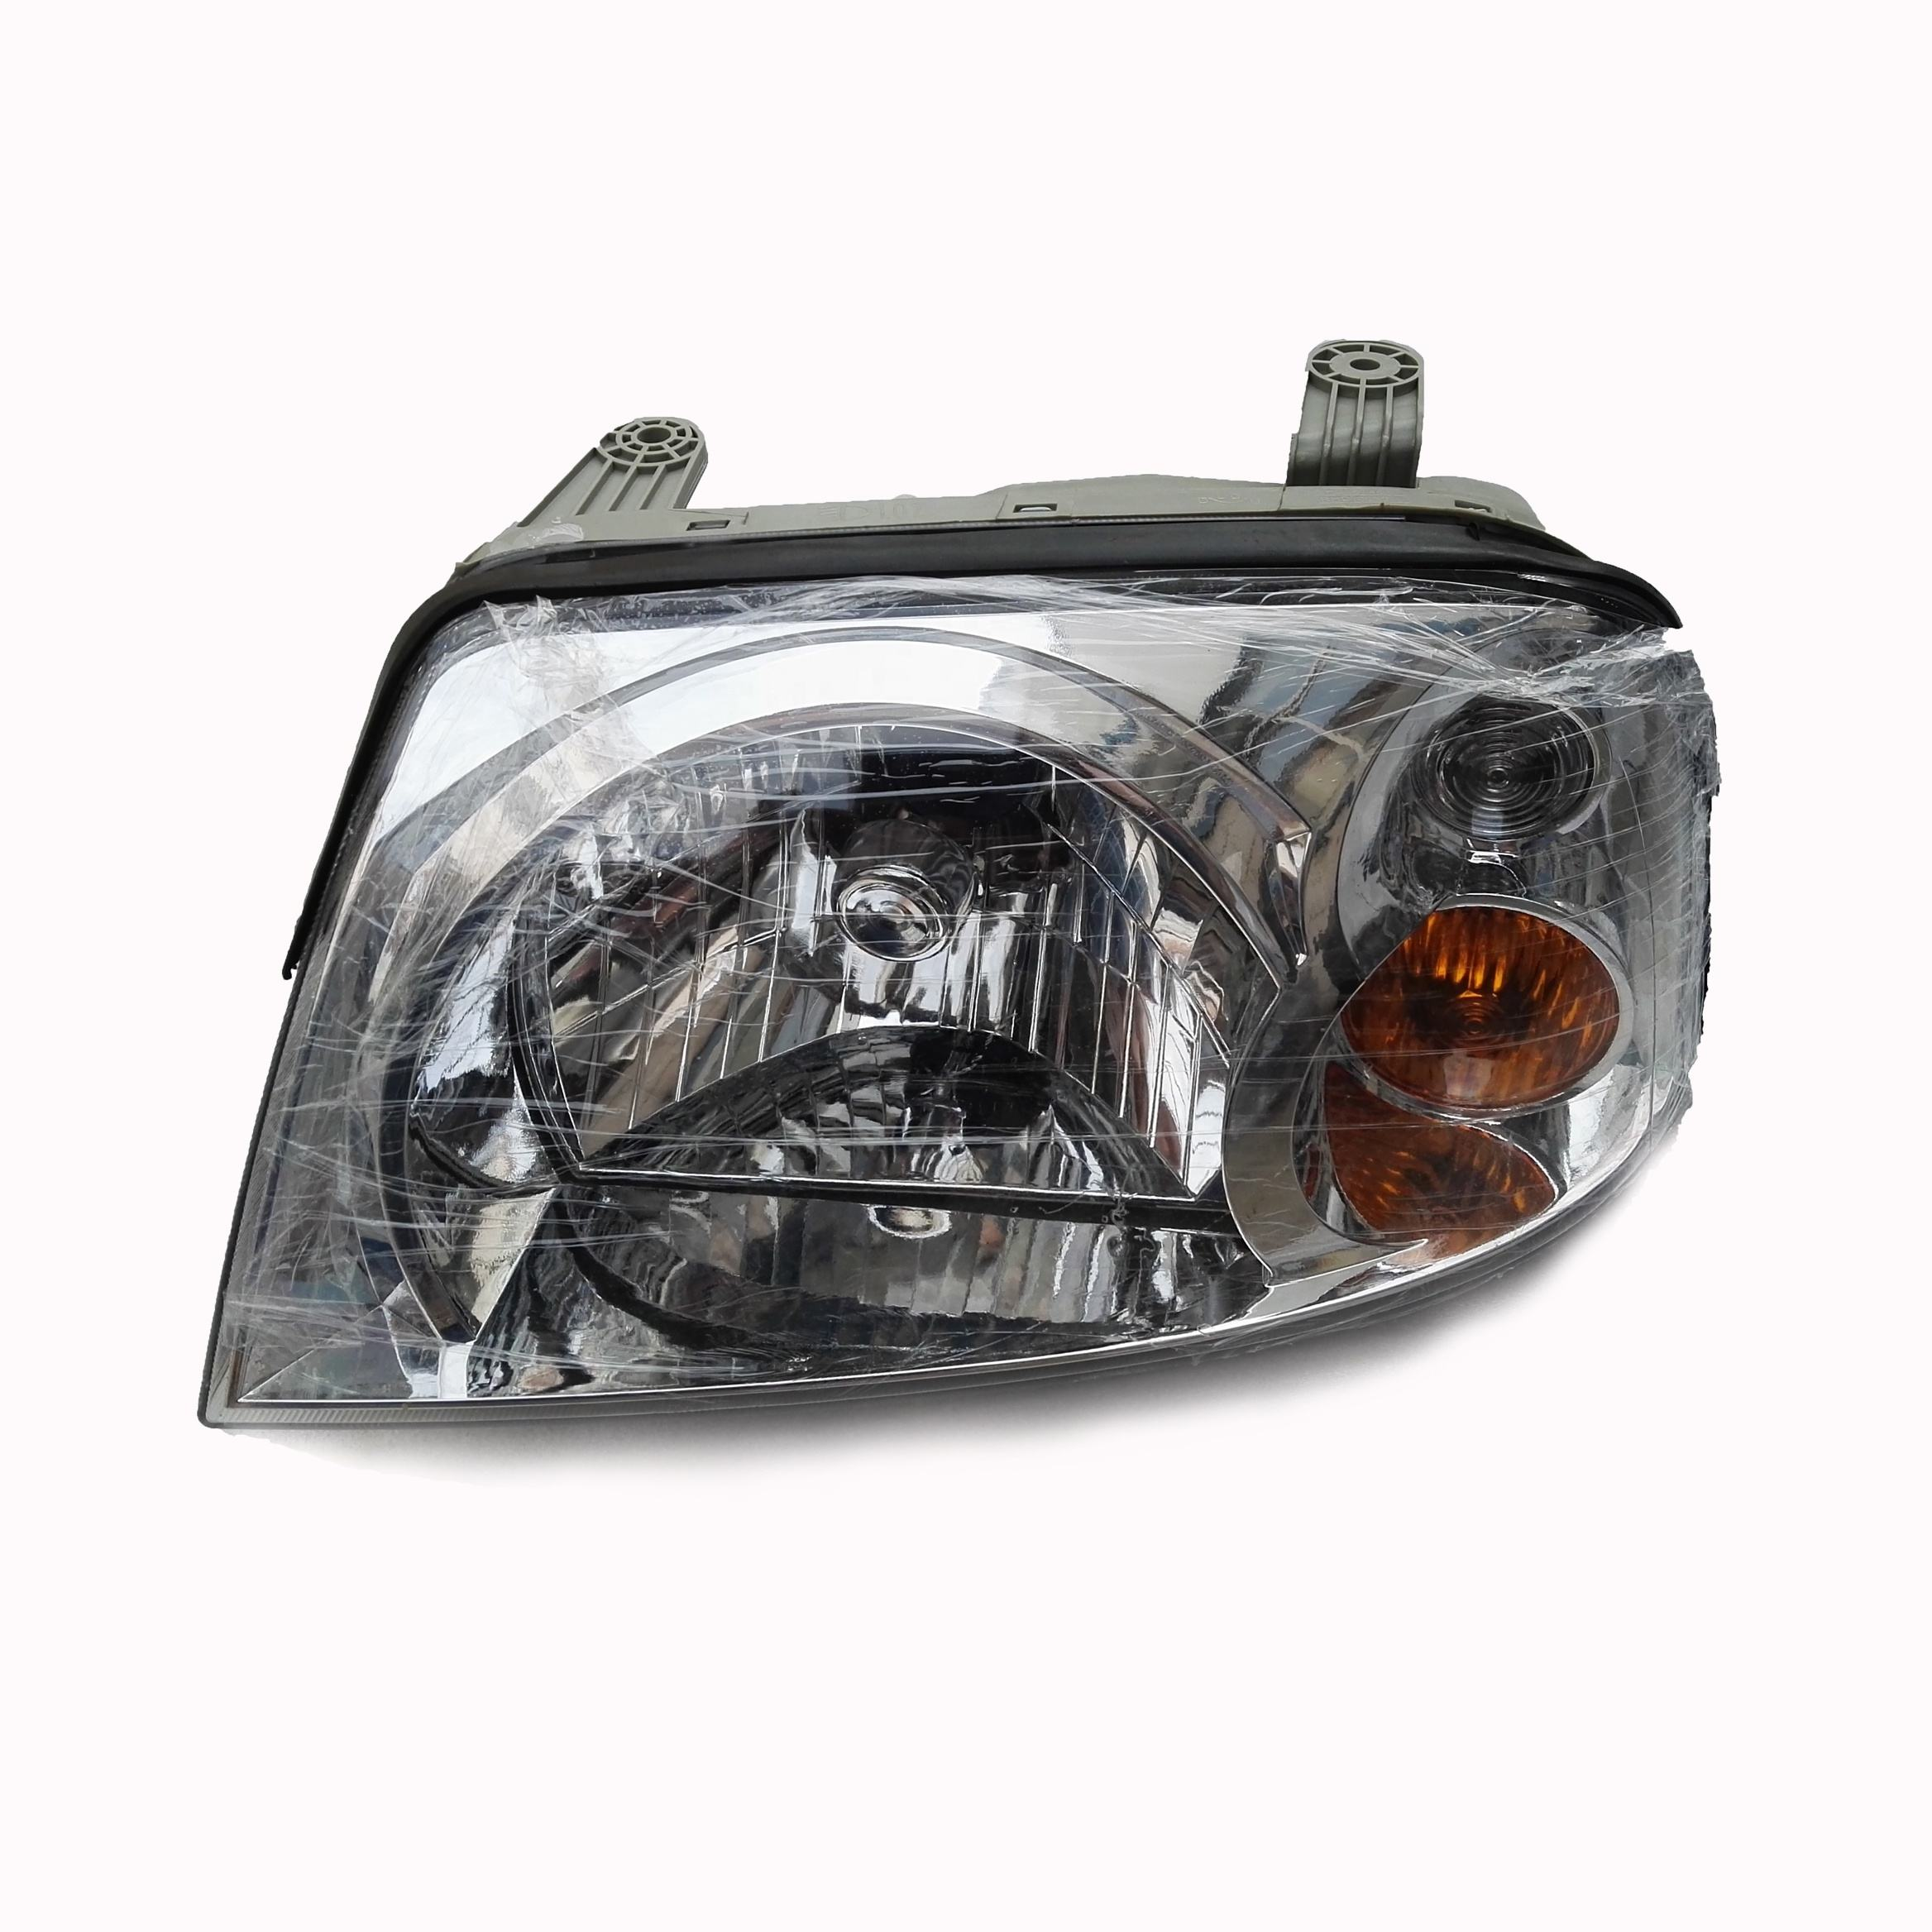 Factory outlet head light for Hyundai ATOS 04 auto parts lamp OEM L 92101-05510 R 92102-05510 plastic headlamp normal